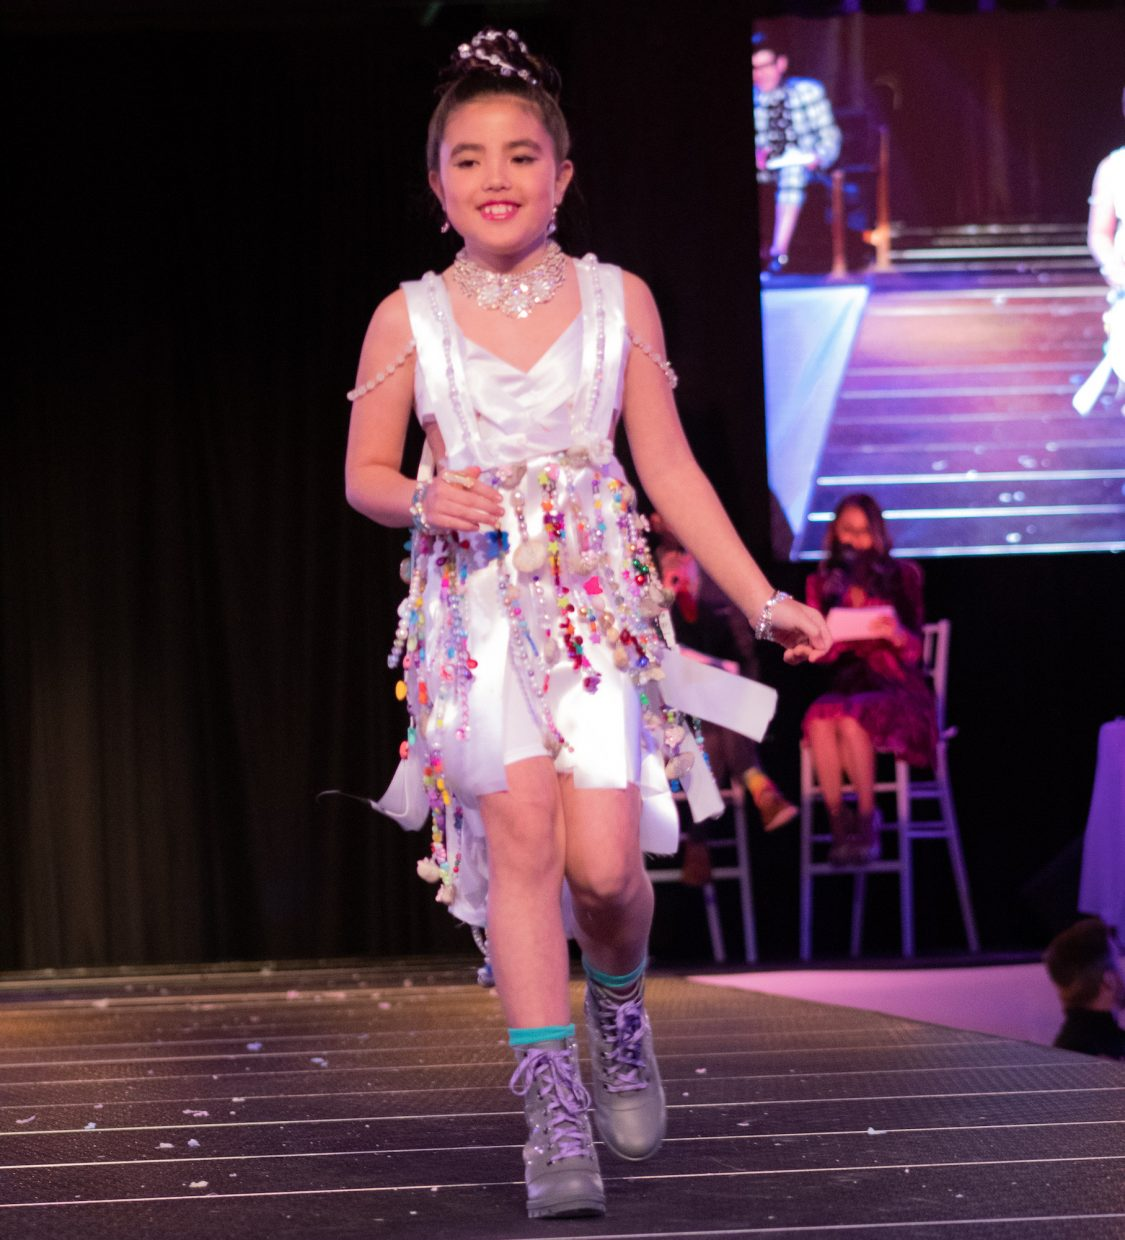 Brielle Dale, the reigning champ of the youth division, took home the title again this year, sporting a dress decked out with beads and jewelry.